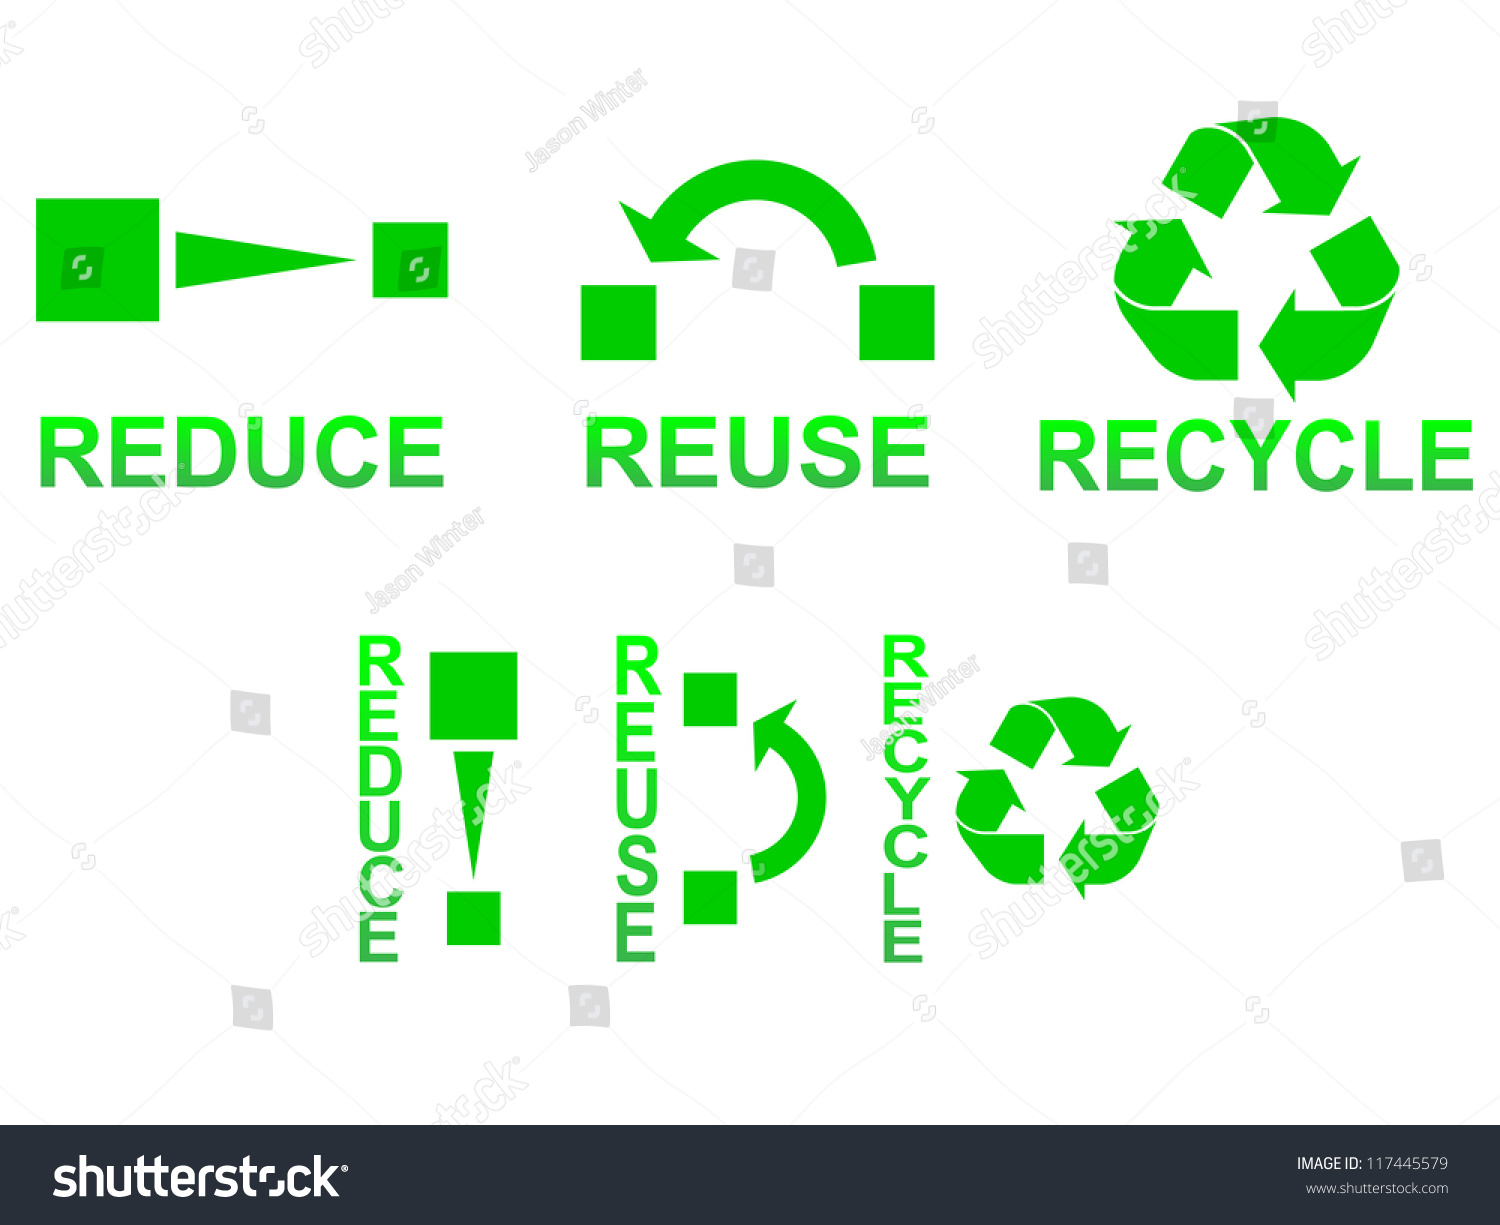 Reduce Reuse Recycle Symbols Concept Illustration Stock